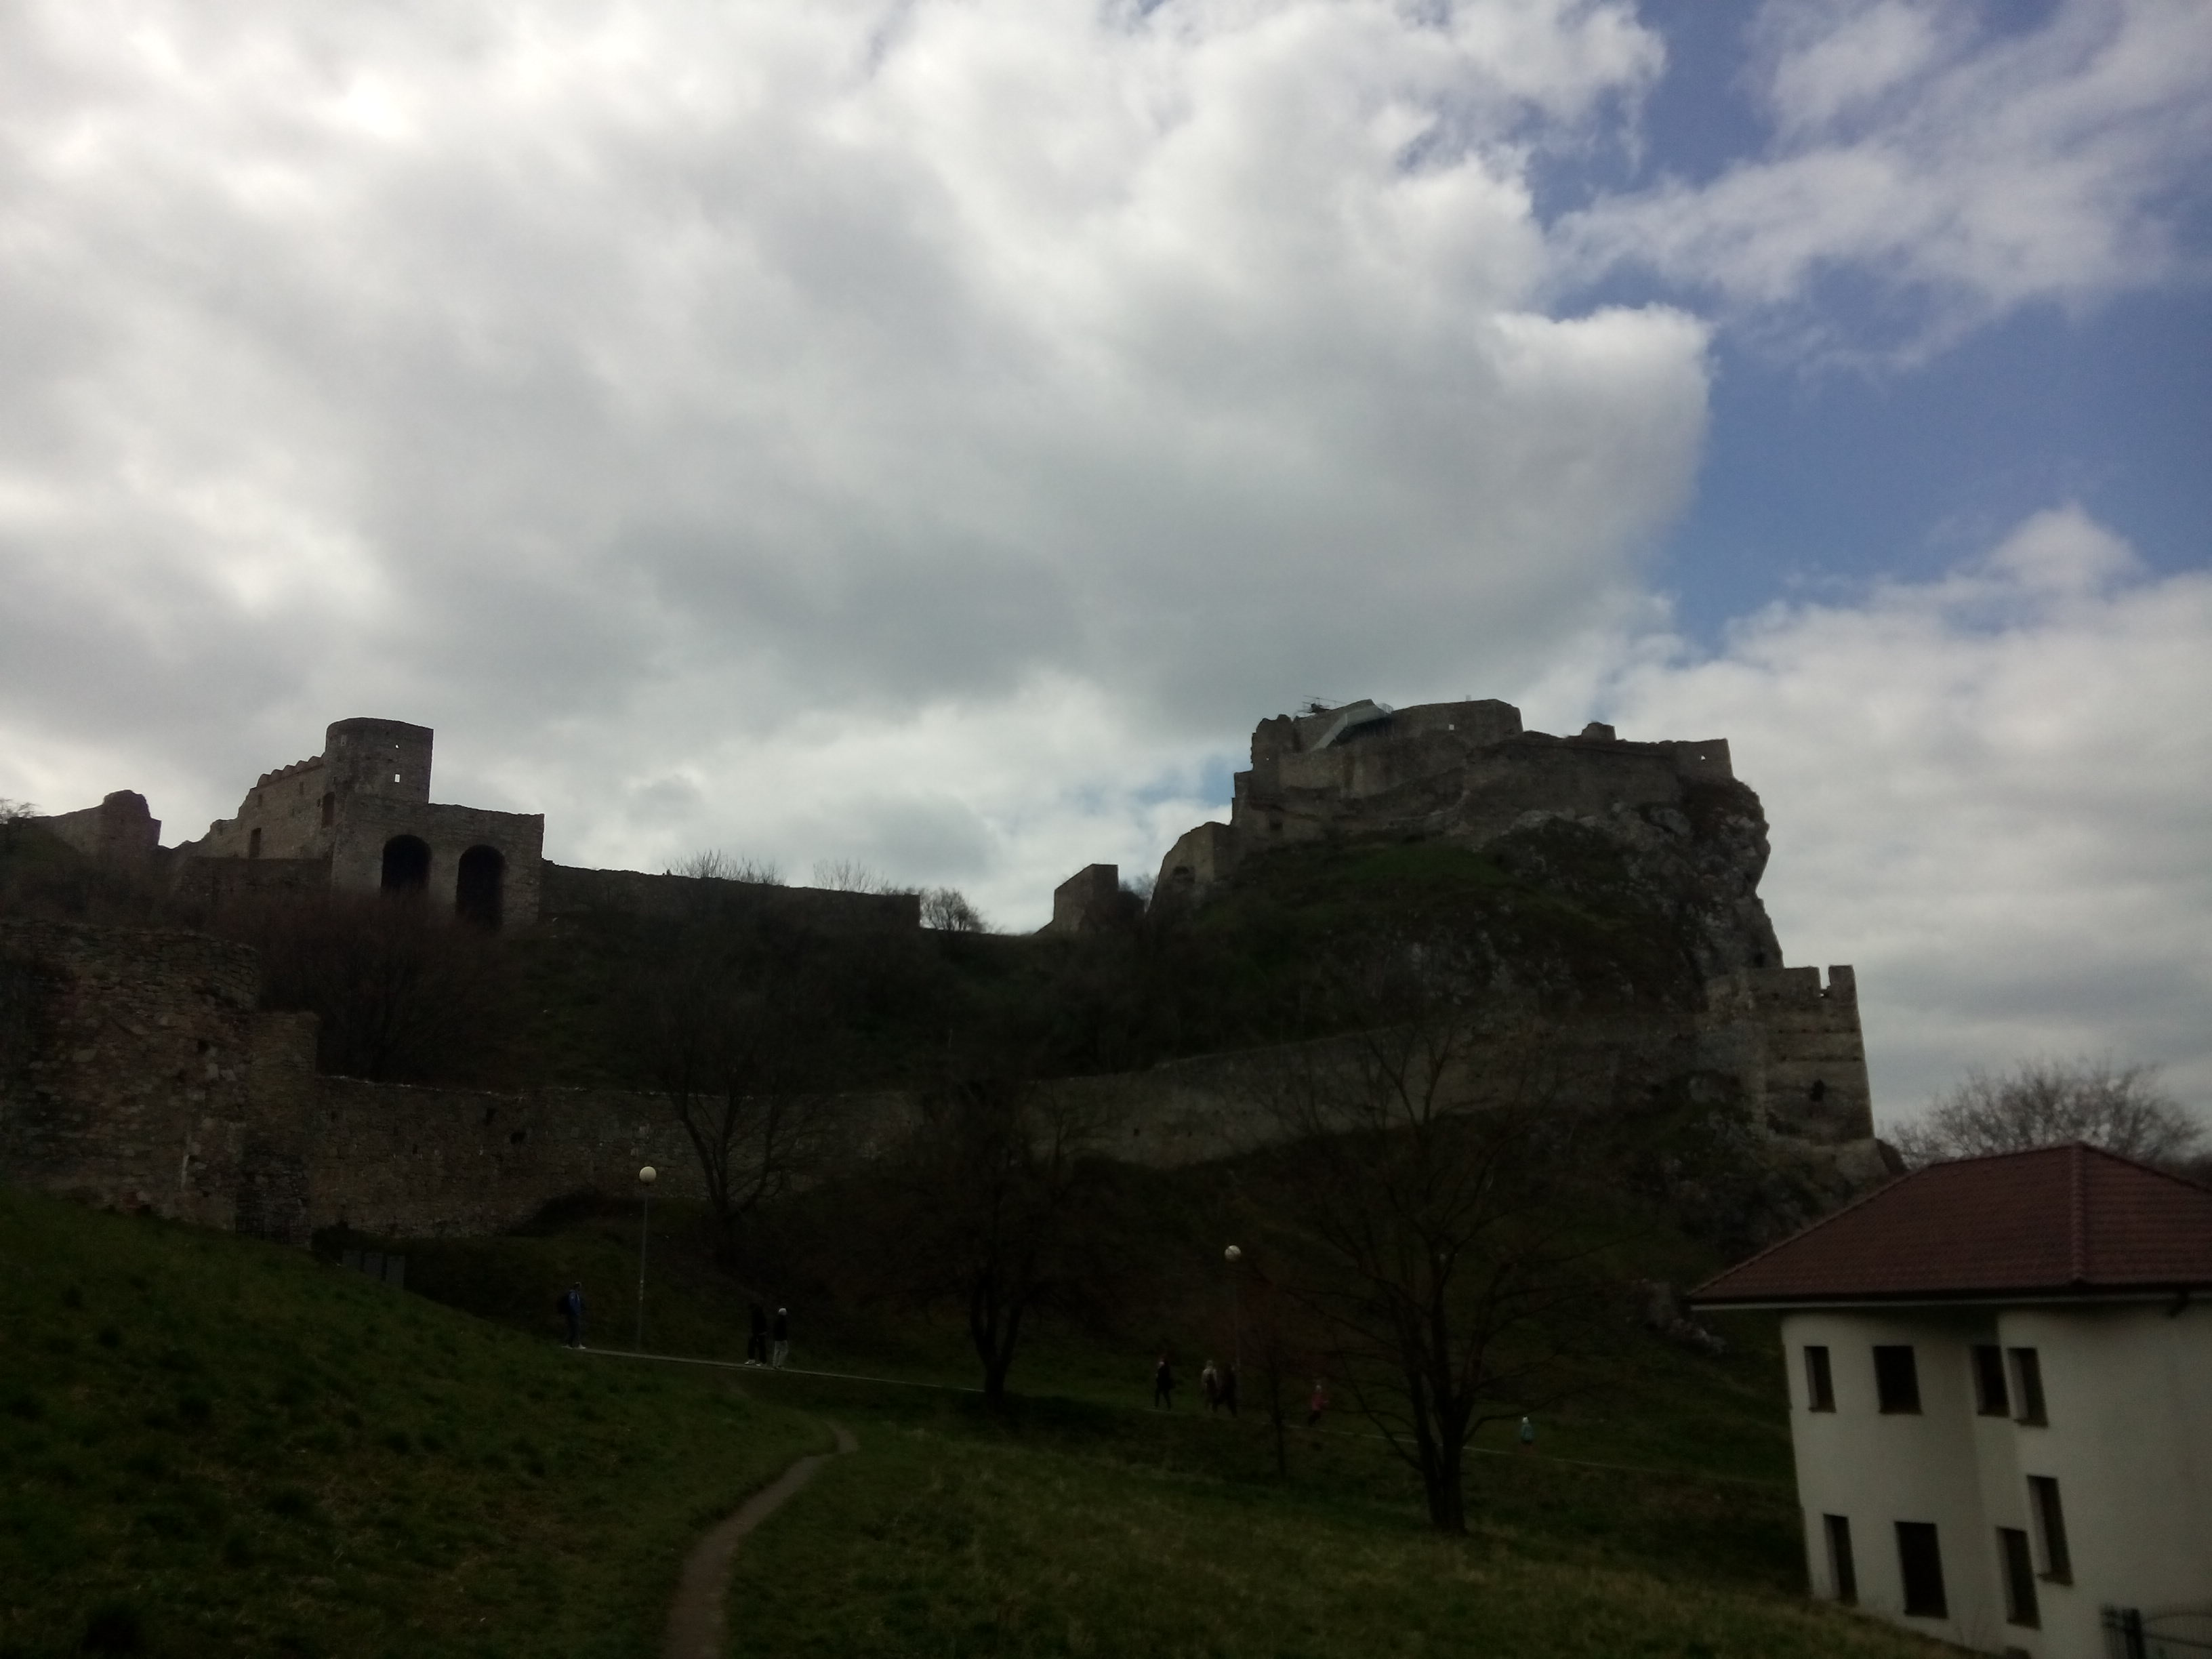 A distant castle on a hill, with white and blue sky